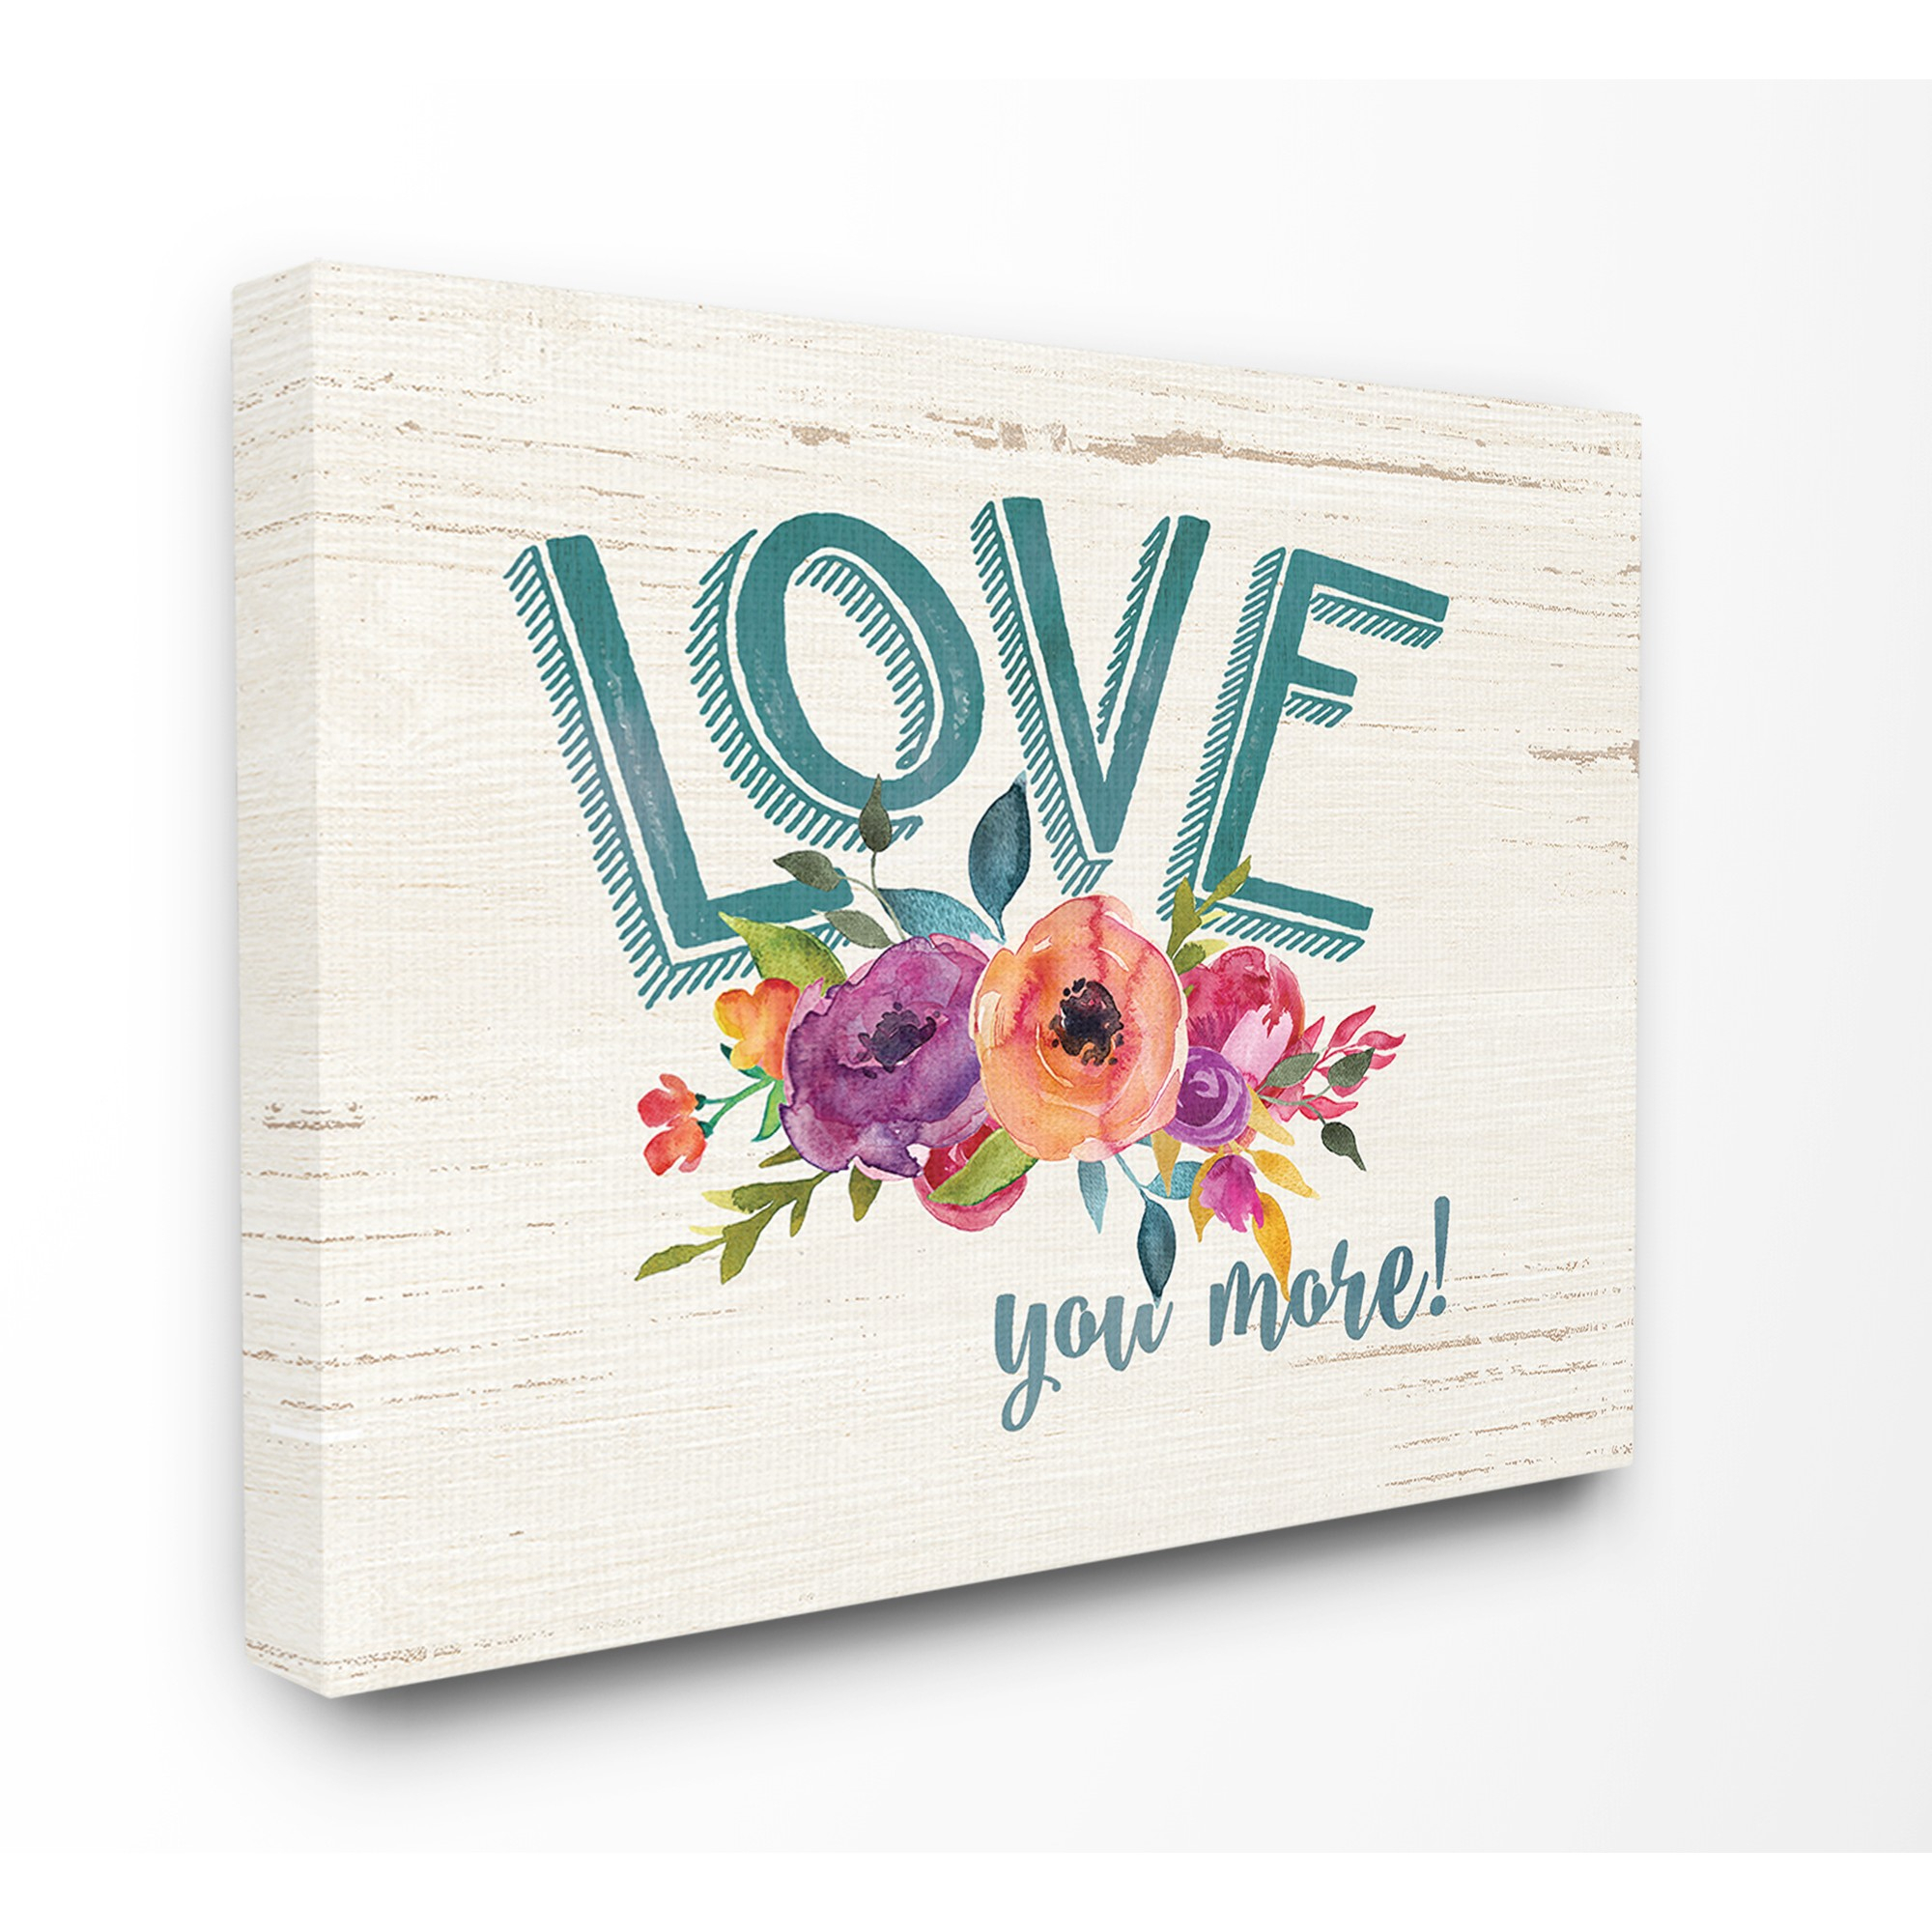 The Stupell Home Decor Collection Love You More Flowers White Wood  Stretched Canvas Wall Art, 30 X 1.5 X 40 in 'love You More' Wood Wall Decor (Image 30 of 30)